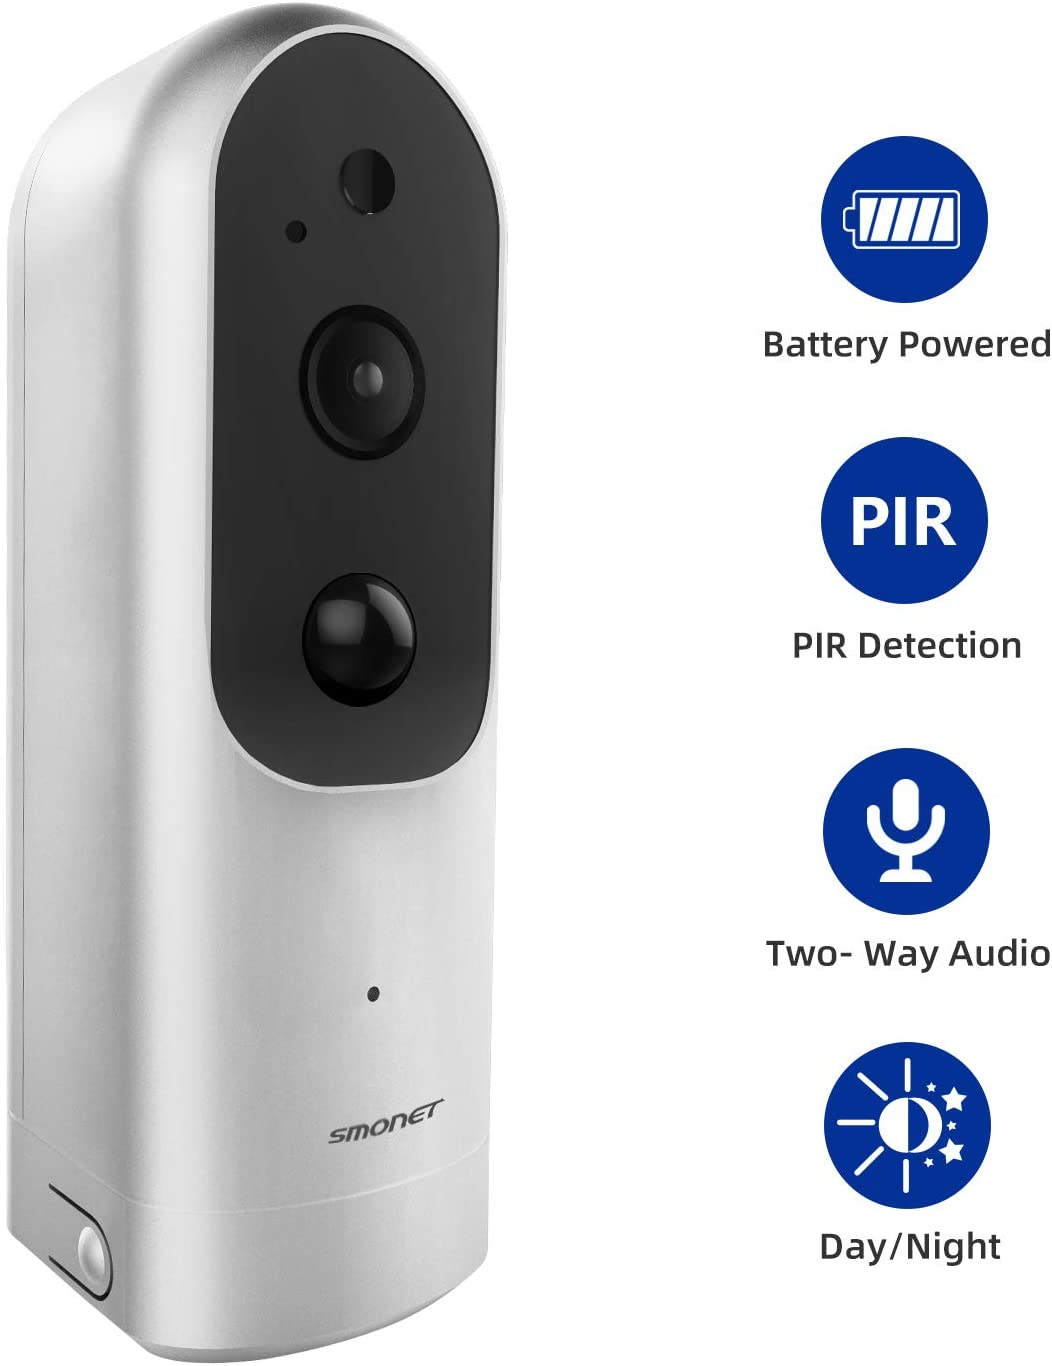 1080P Wire-Free Surveillance Camera, SMONET Rechargeable Battery-Powered Home Security IP Camera with 2-Way Audio, IR-Cut Night Vision, PIR Alarm, Used for Baby Pet, Support Micro SD Card